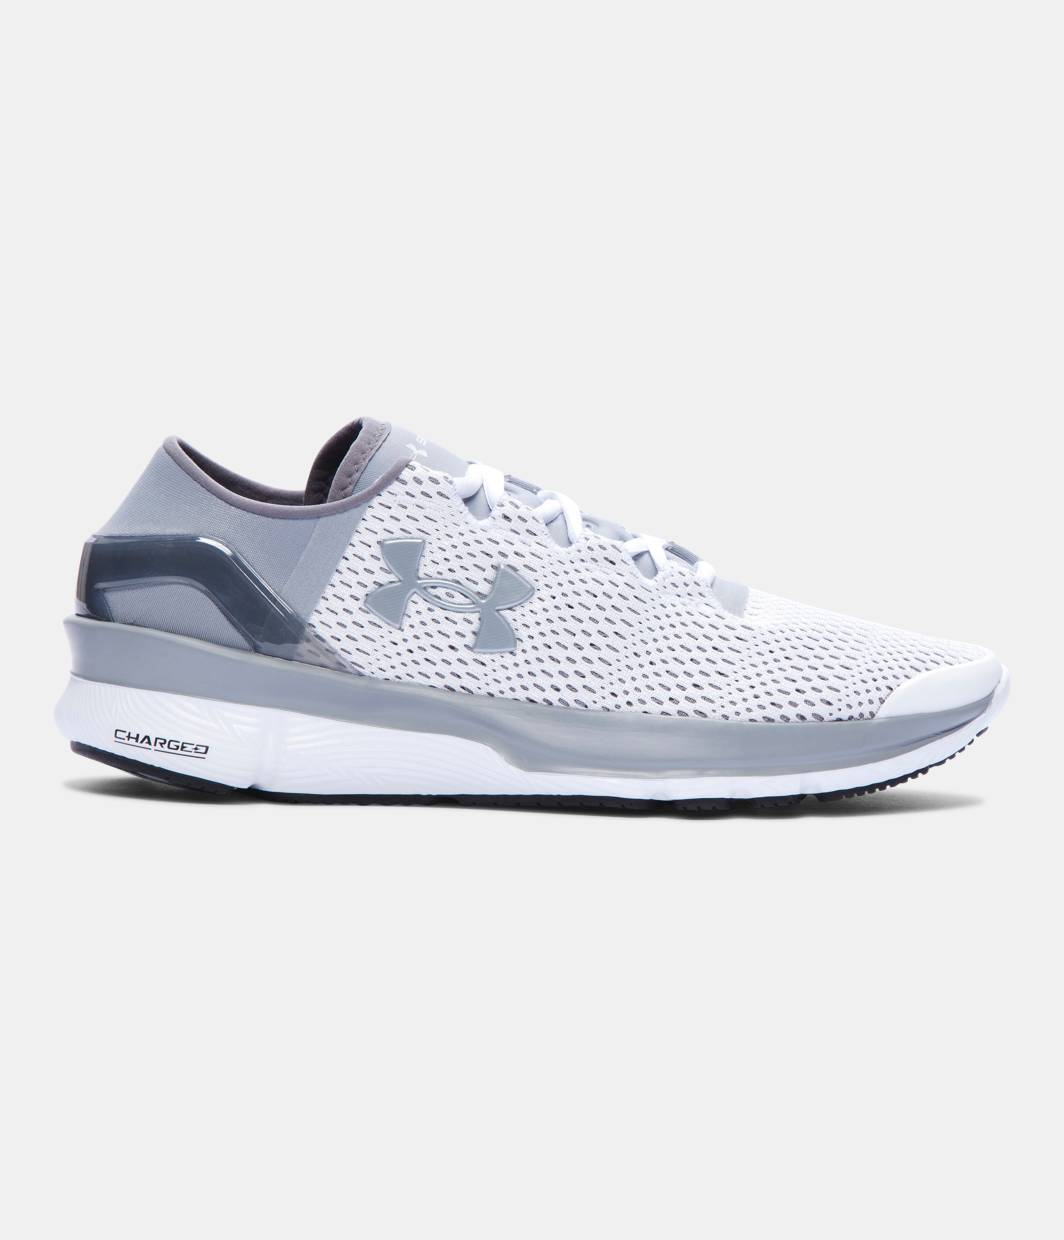 Amazing Details About Women39s Under Armour SpeedForm Apollo Running Shoes